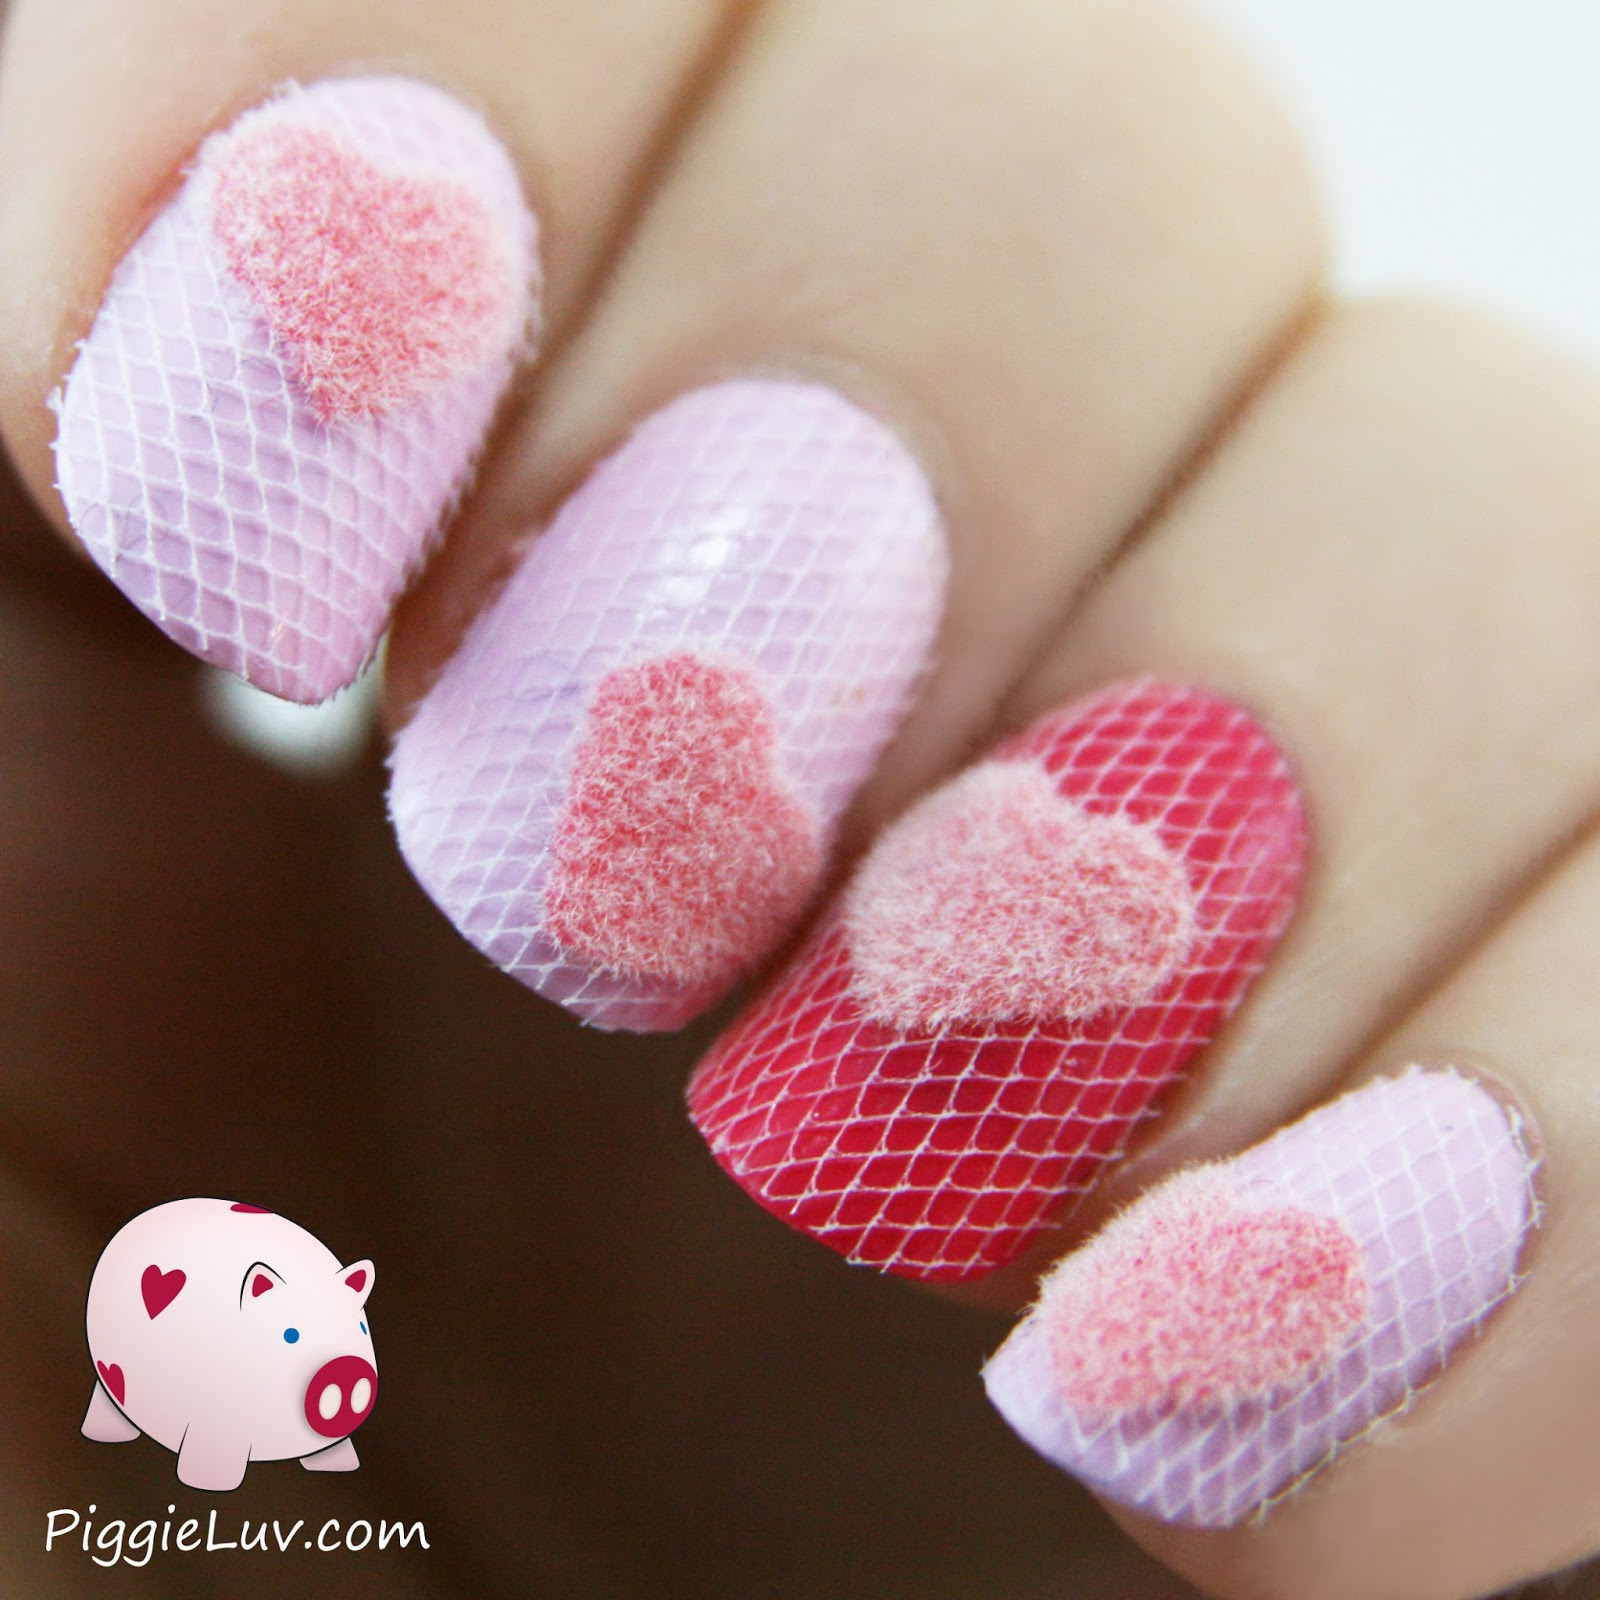 Piggieluv Fuzzy Hearts Nails To Cuddle With